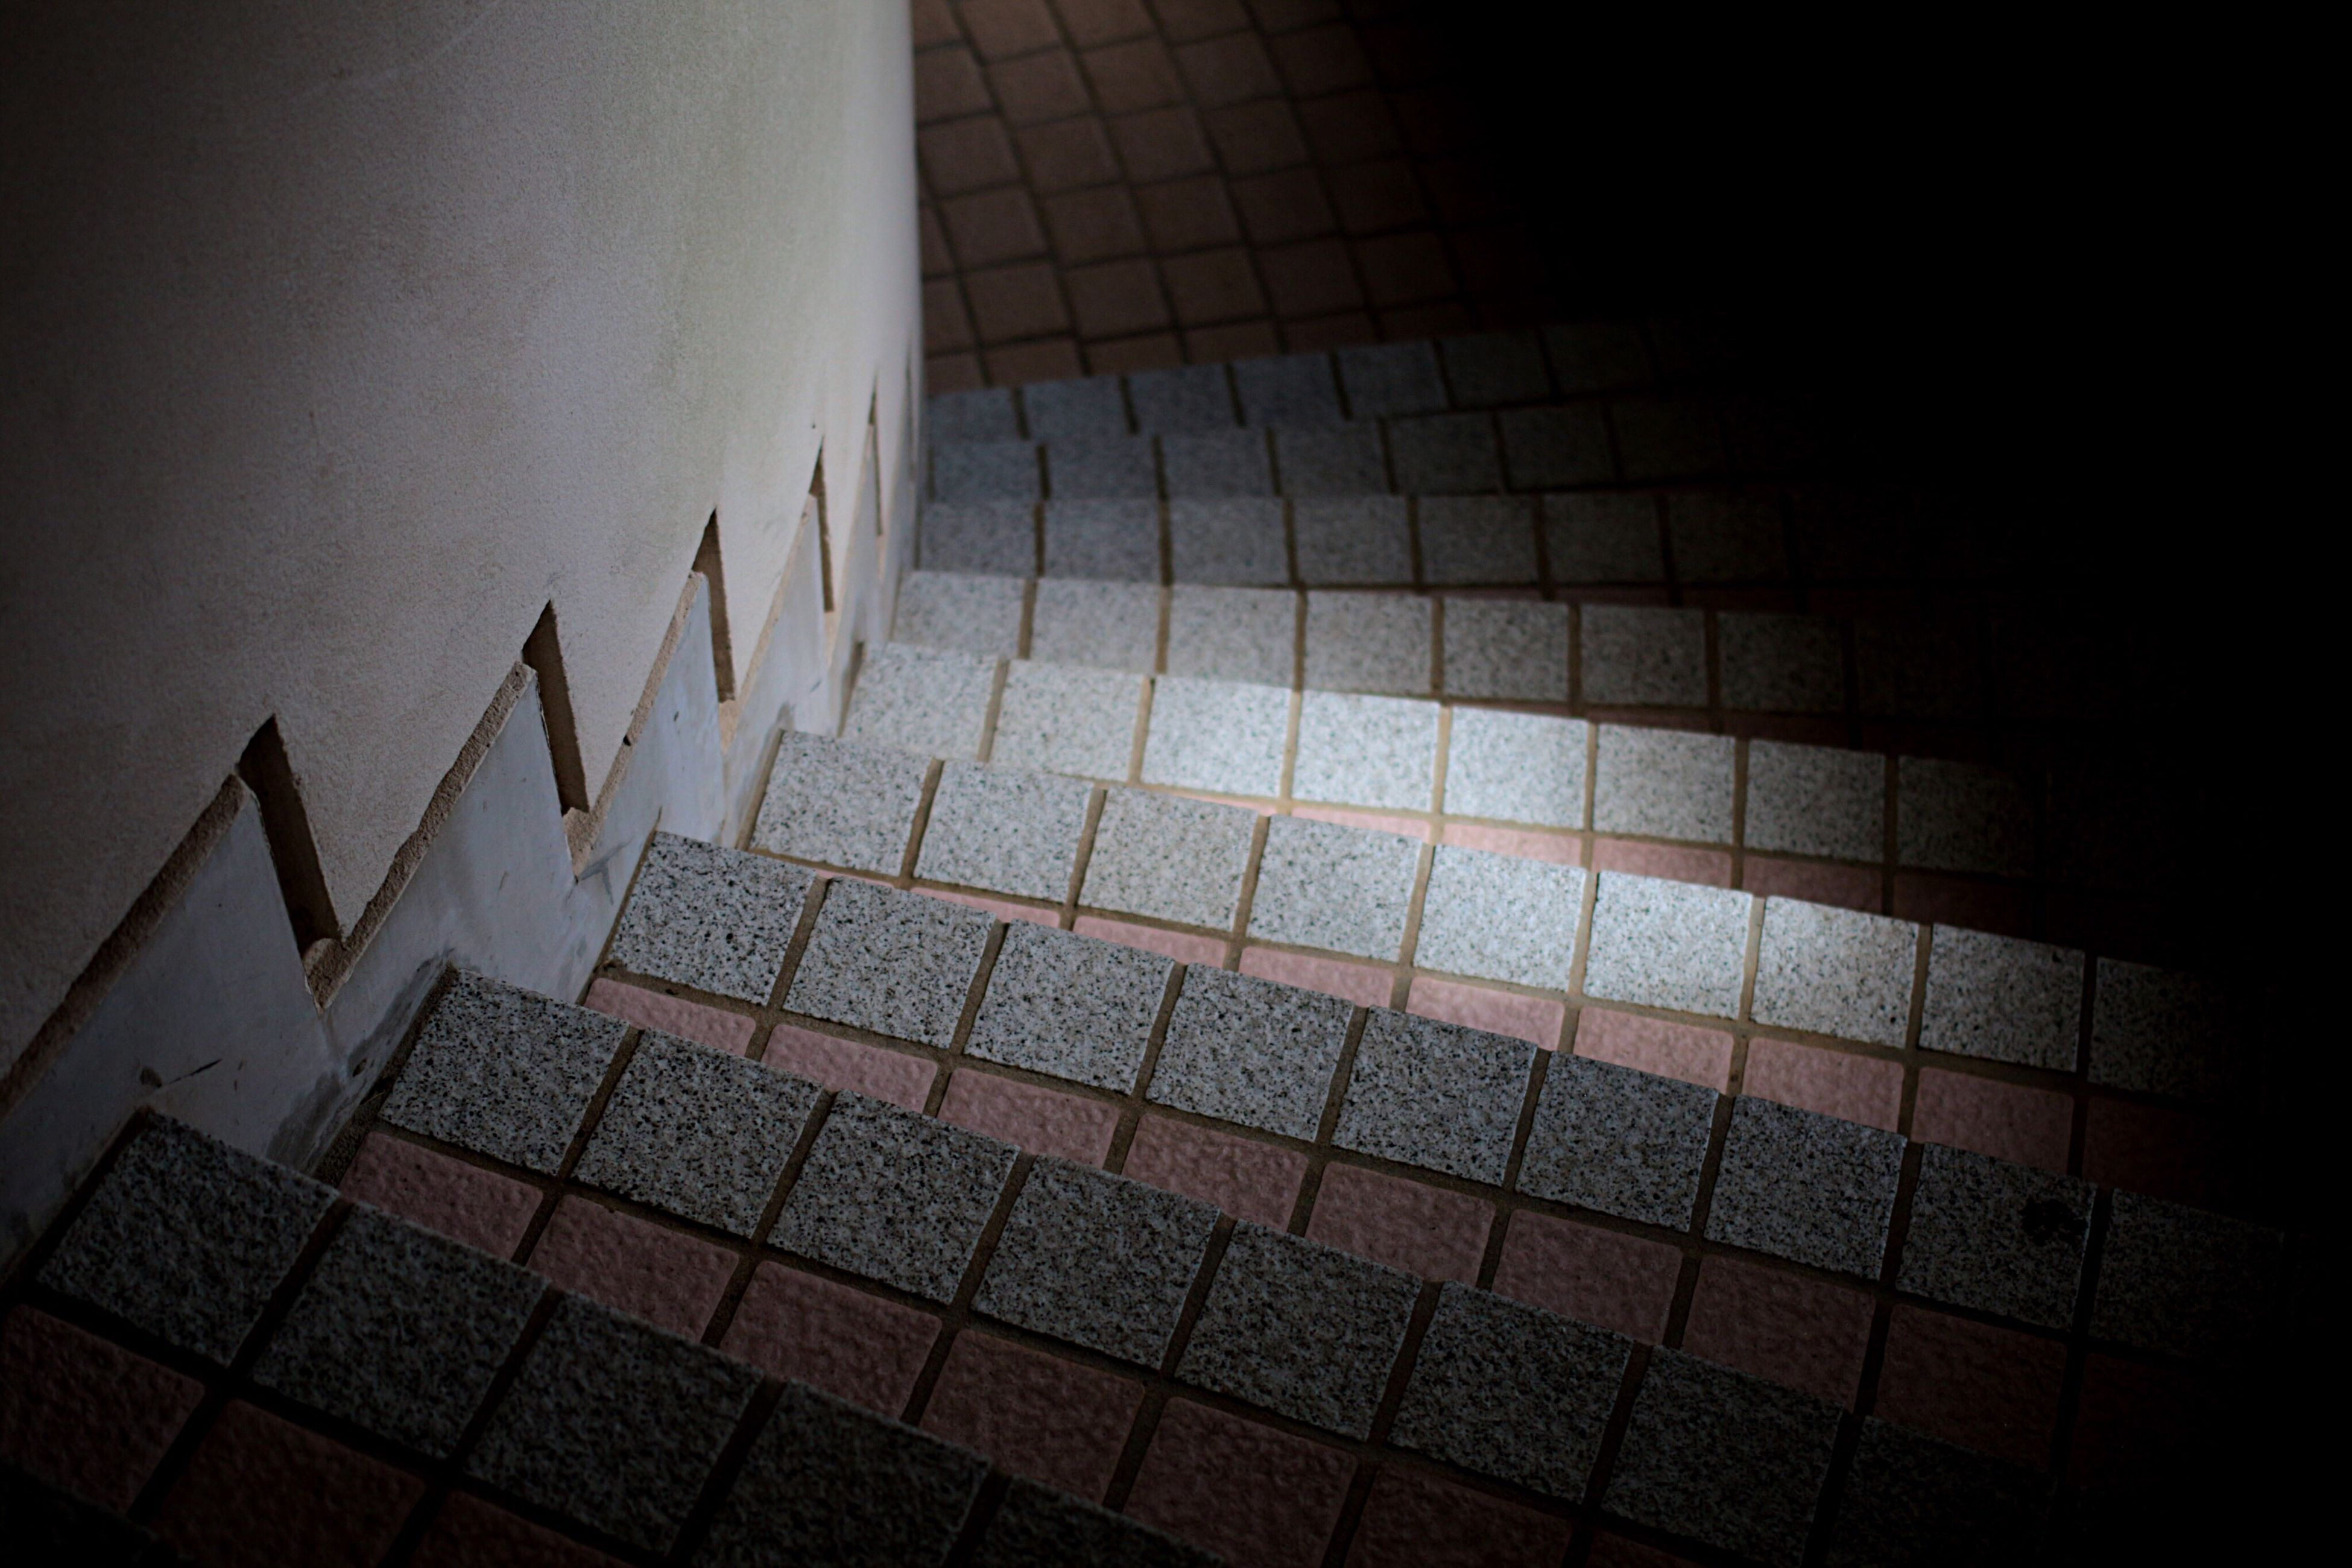 indoors, pattern, built structure, architecture, wall - building feature, tiled floor, shadow, flooring, no people, high angle view, sunlight, design, day, geometric shape, vignette, auto post production filter, tile, close-up, paving stone